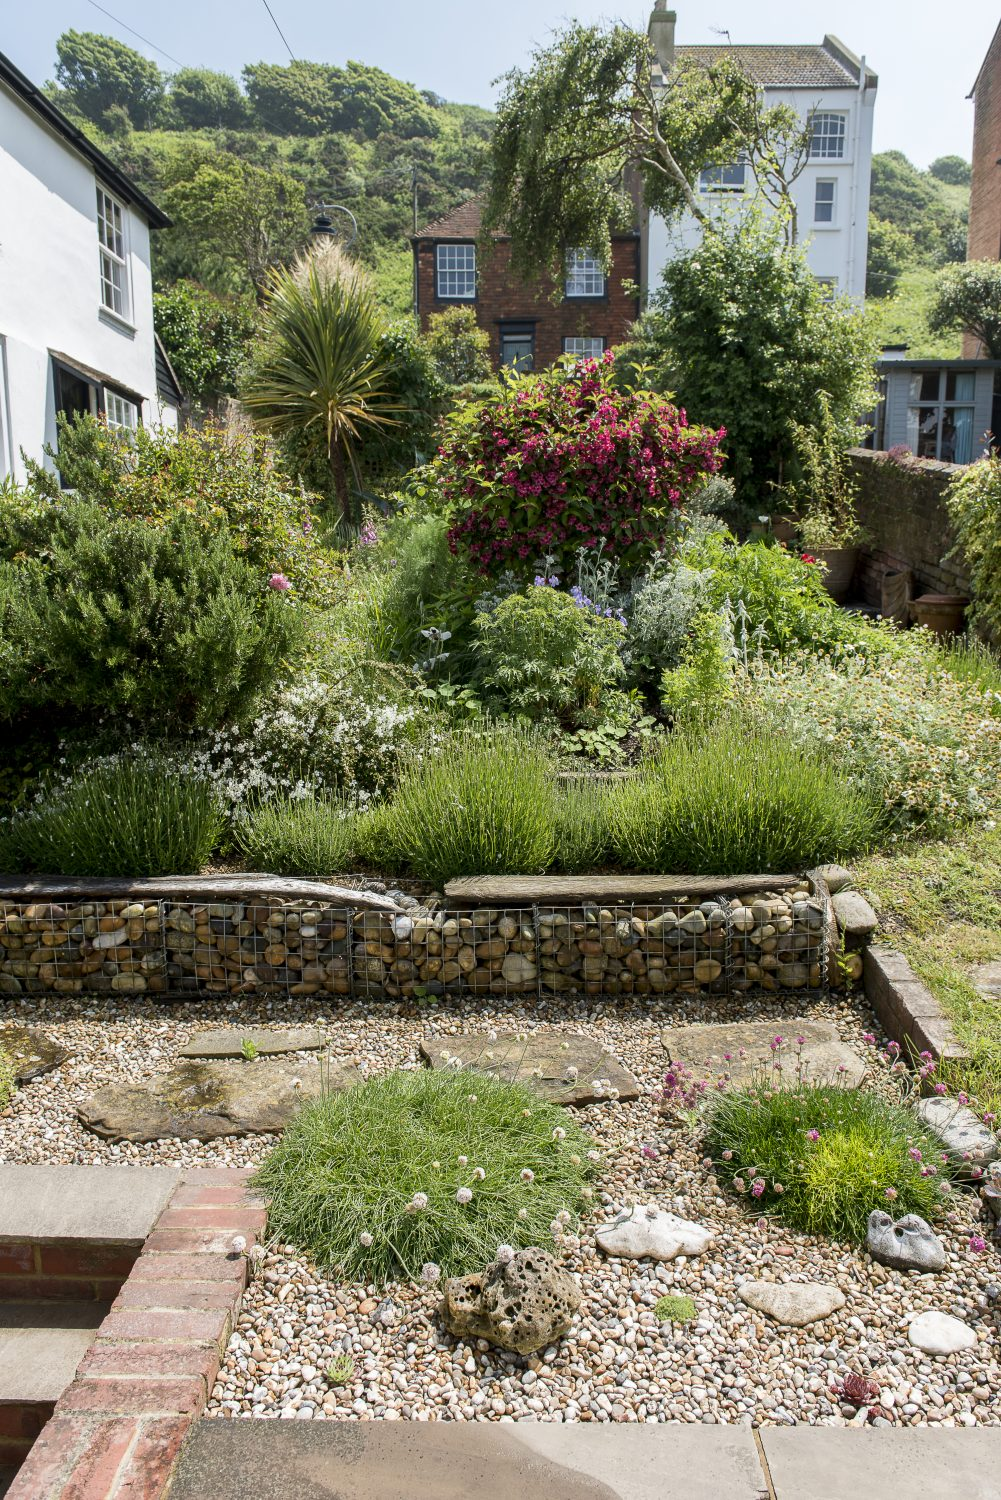 The terraced garden at the front of the house. The previous owner had created the garden from scratch and Melanie has enhanced and edited it, adding her own touches, including a seating area made out of metal gabion baskets filled with pebbles